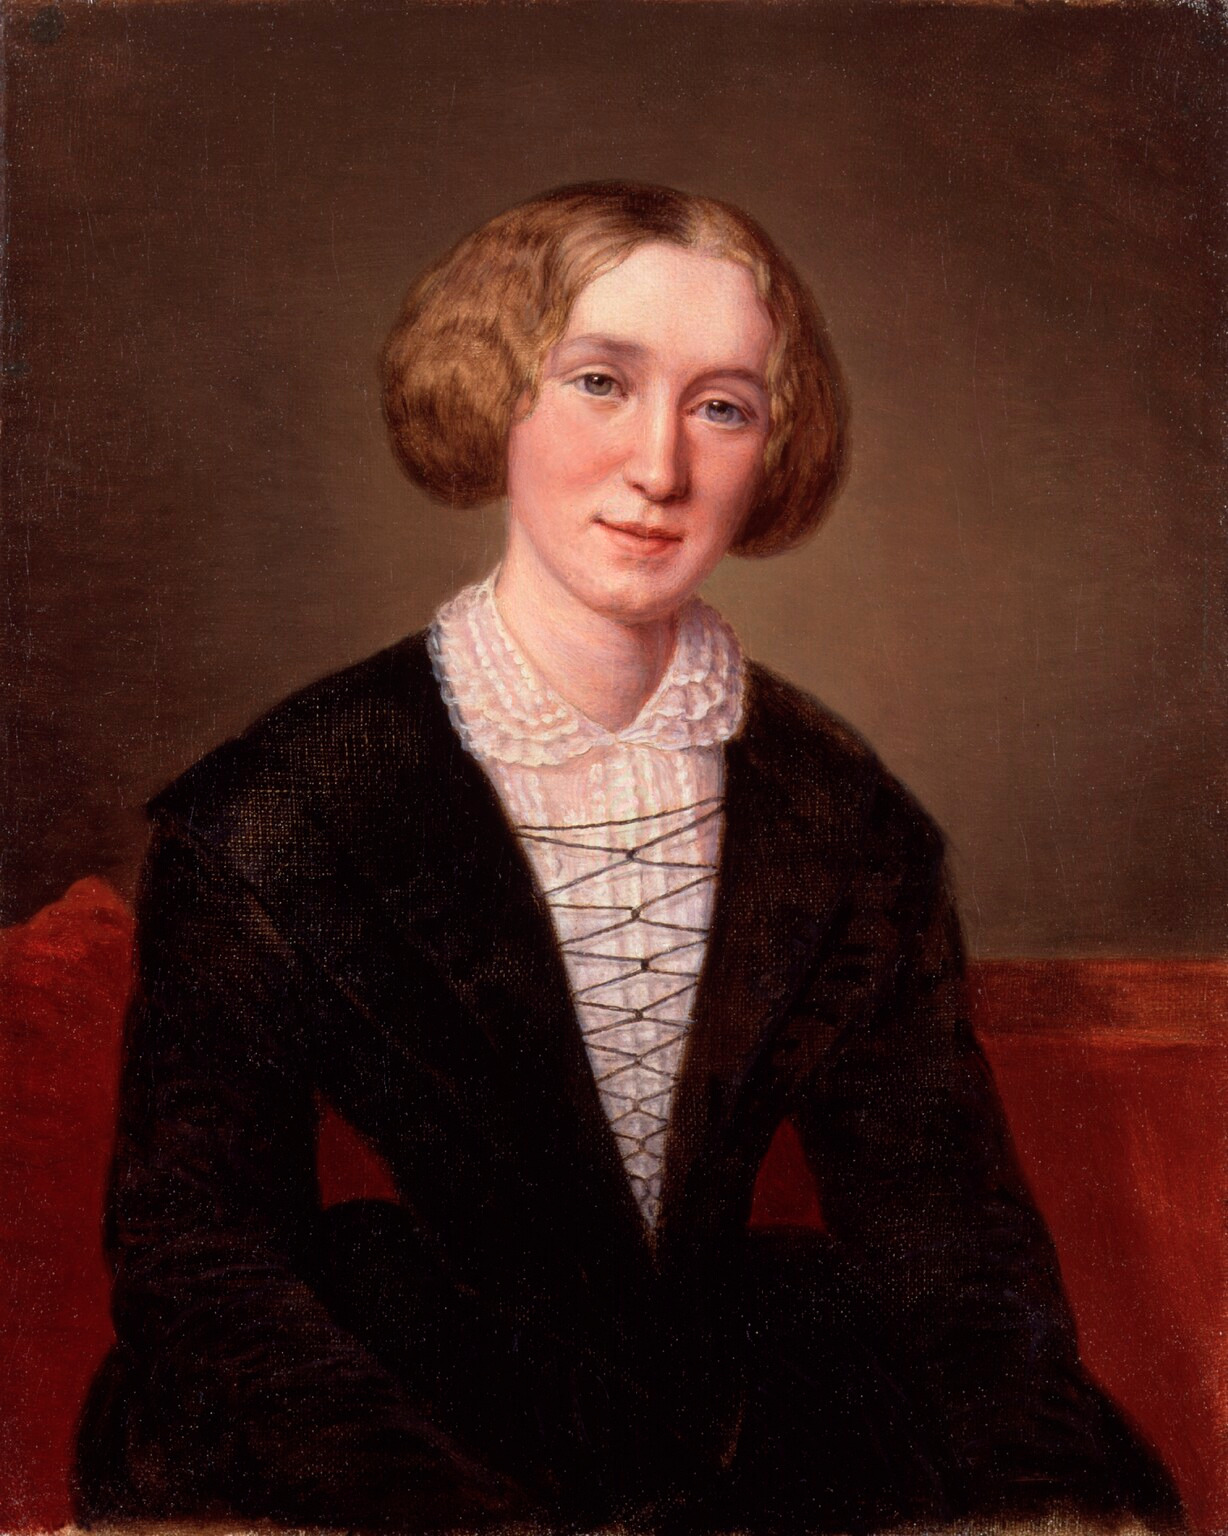 George Eliot at 30 by François D'Albert Durade